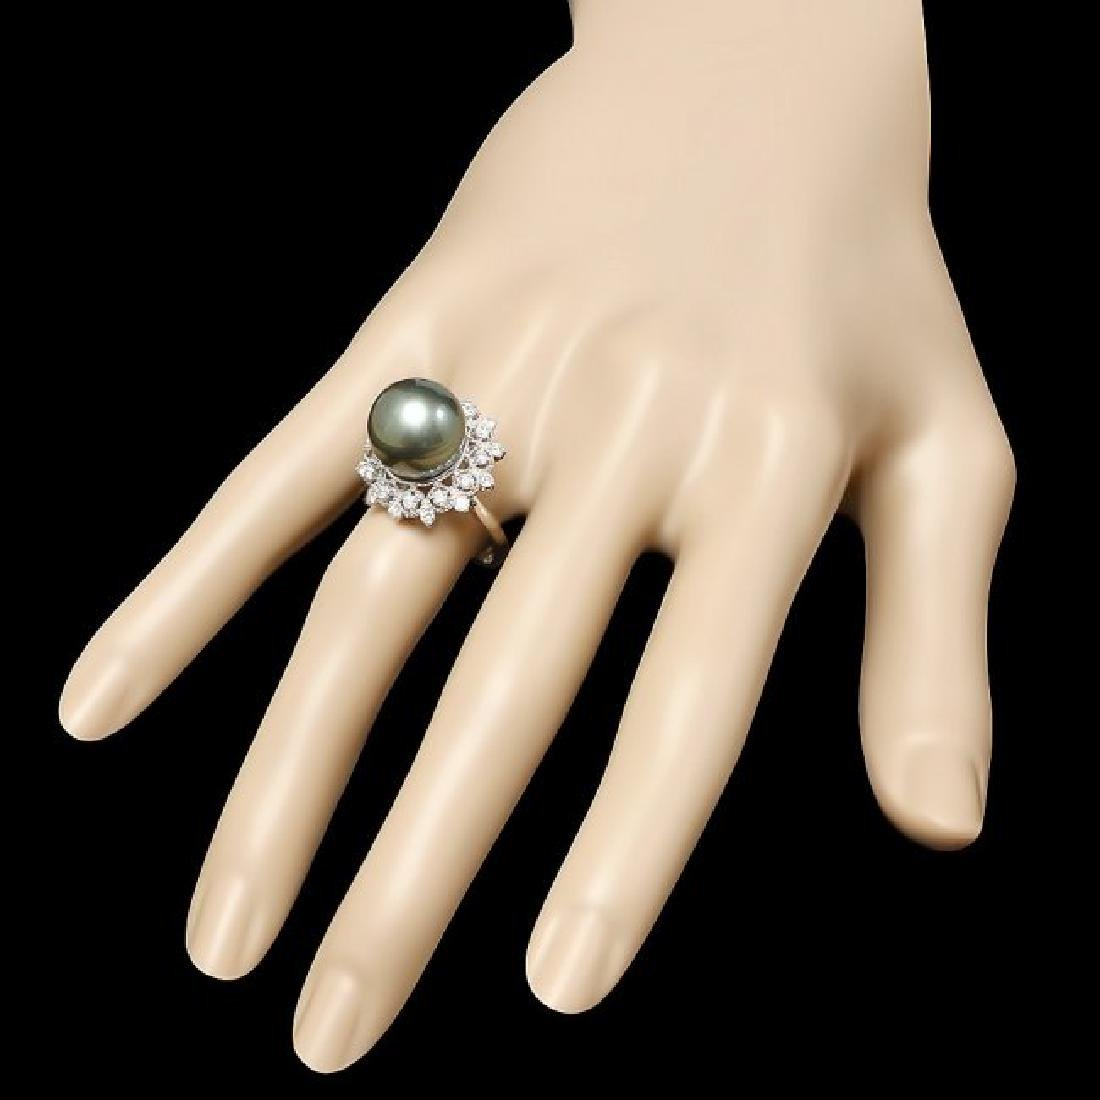 14k White Gold 12.5mm Pearl 0.60ct Diamond Ring - 3